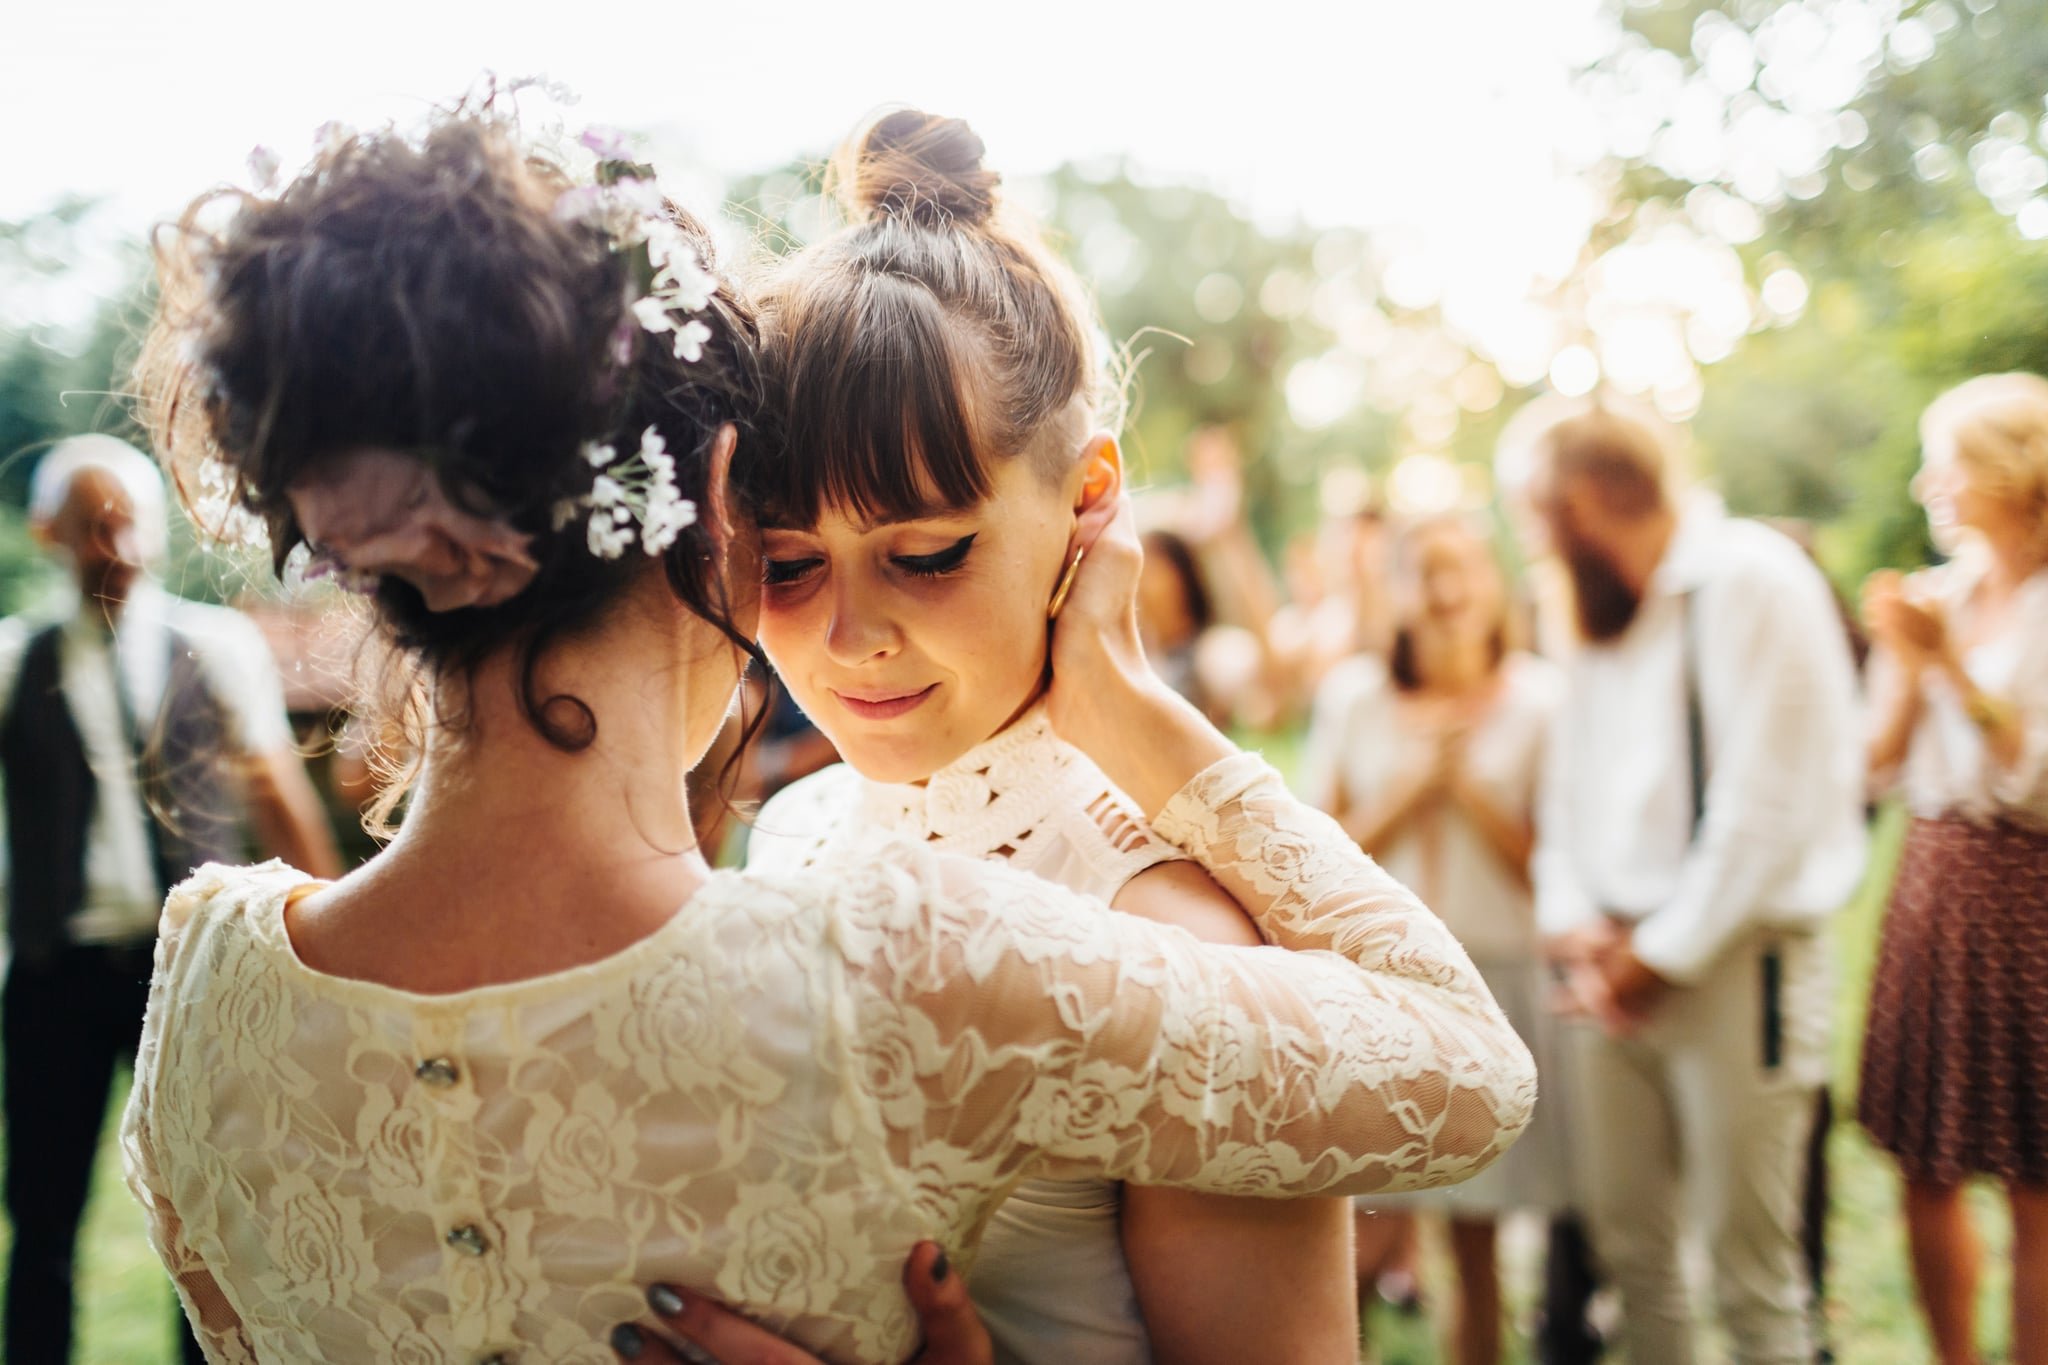 Newlywed lesbian couple dancing together the first dance after their wedding ceremony. Family and friends are visible in the background